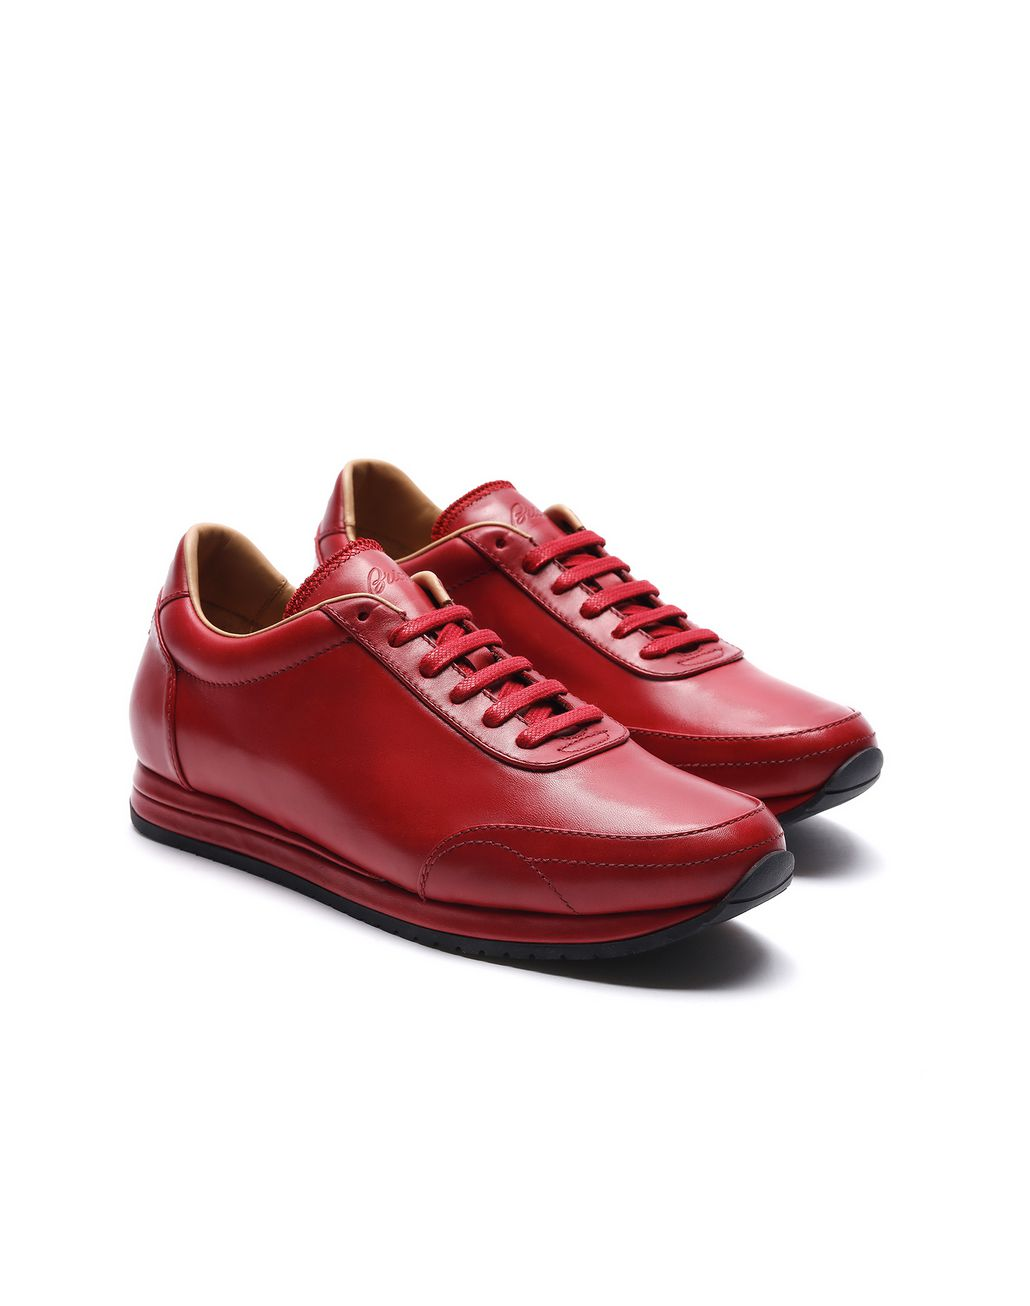 BRIONI Red Runner Sneakers Sneakers Man d